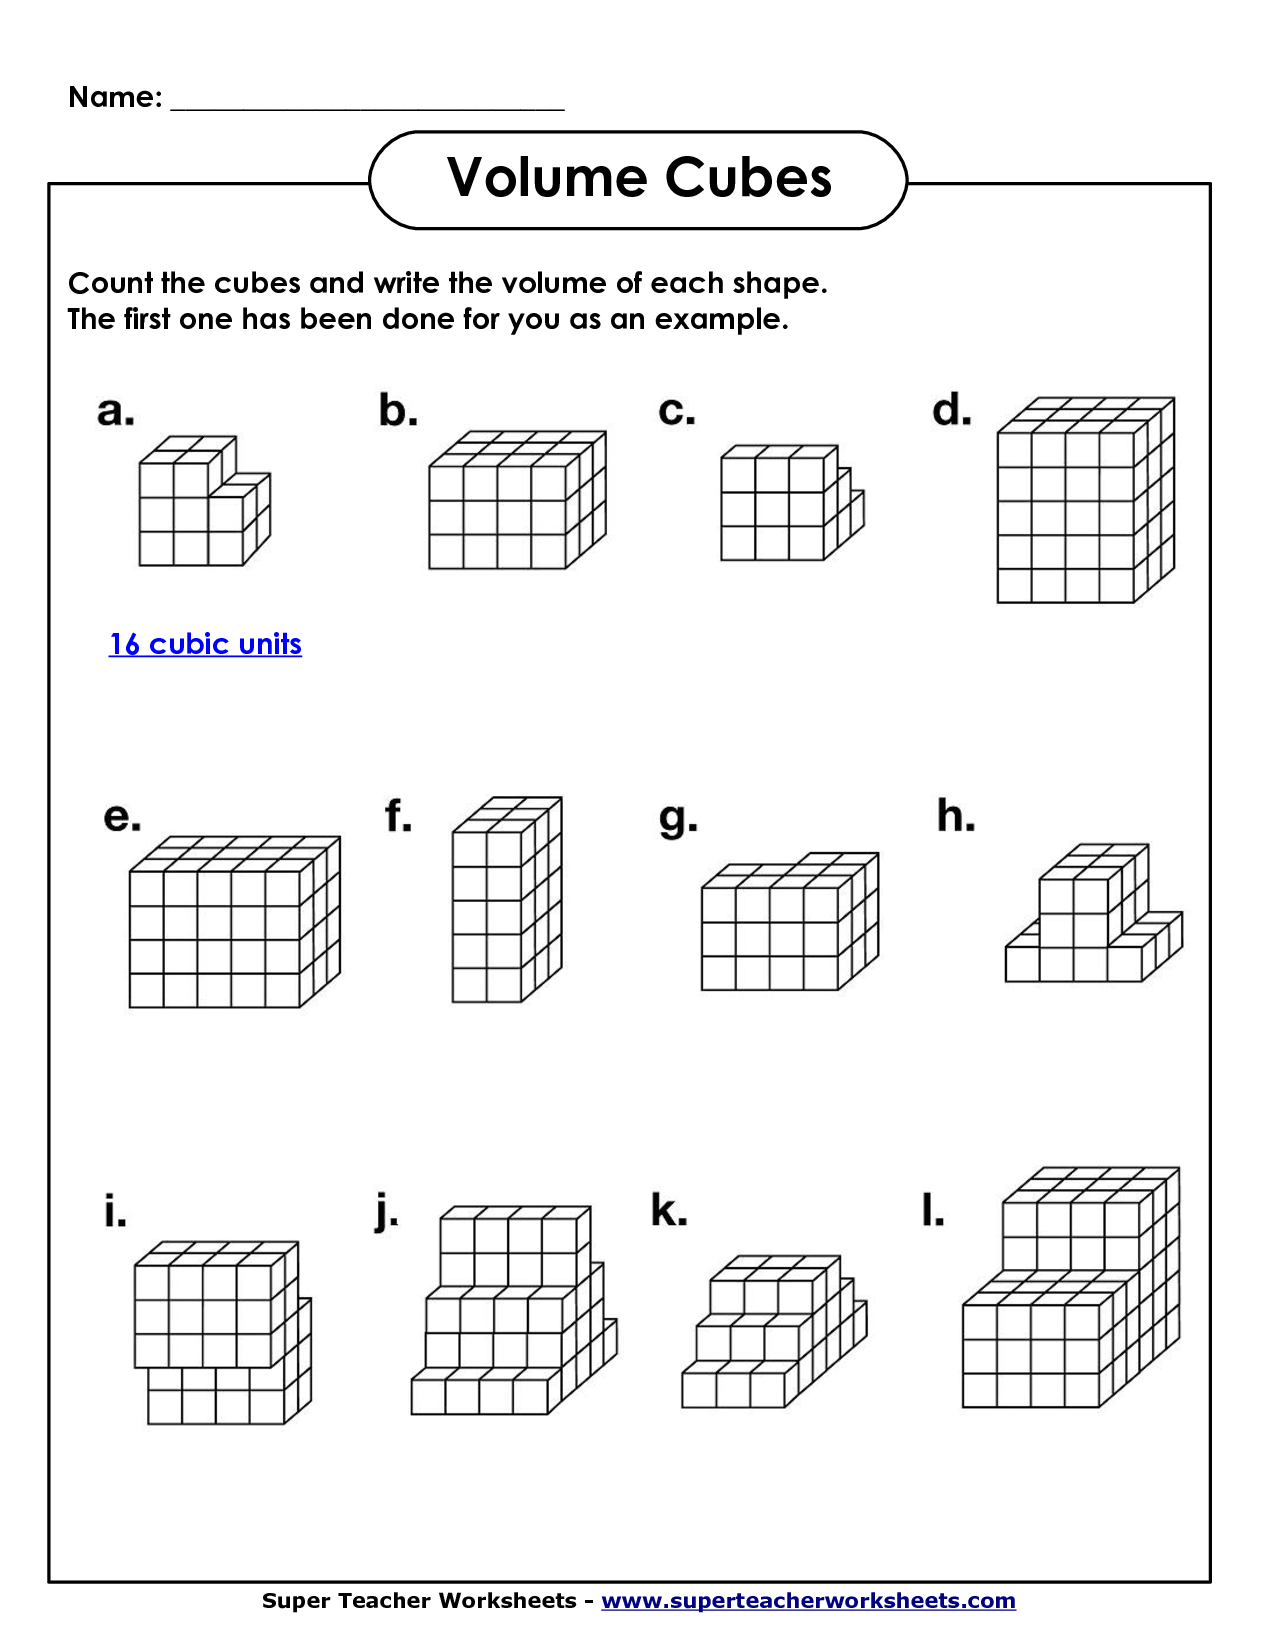 Worksheet With Answers Volume Cuboid